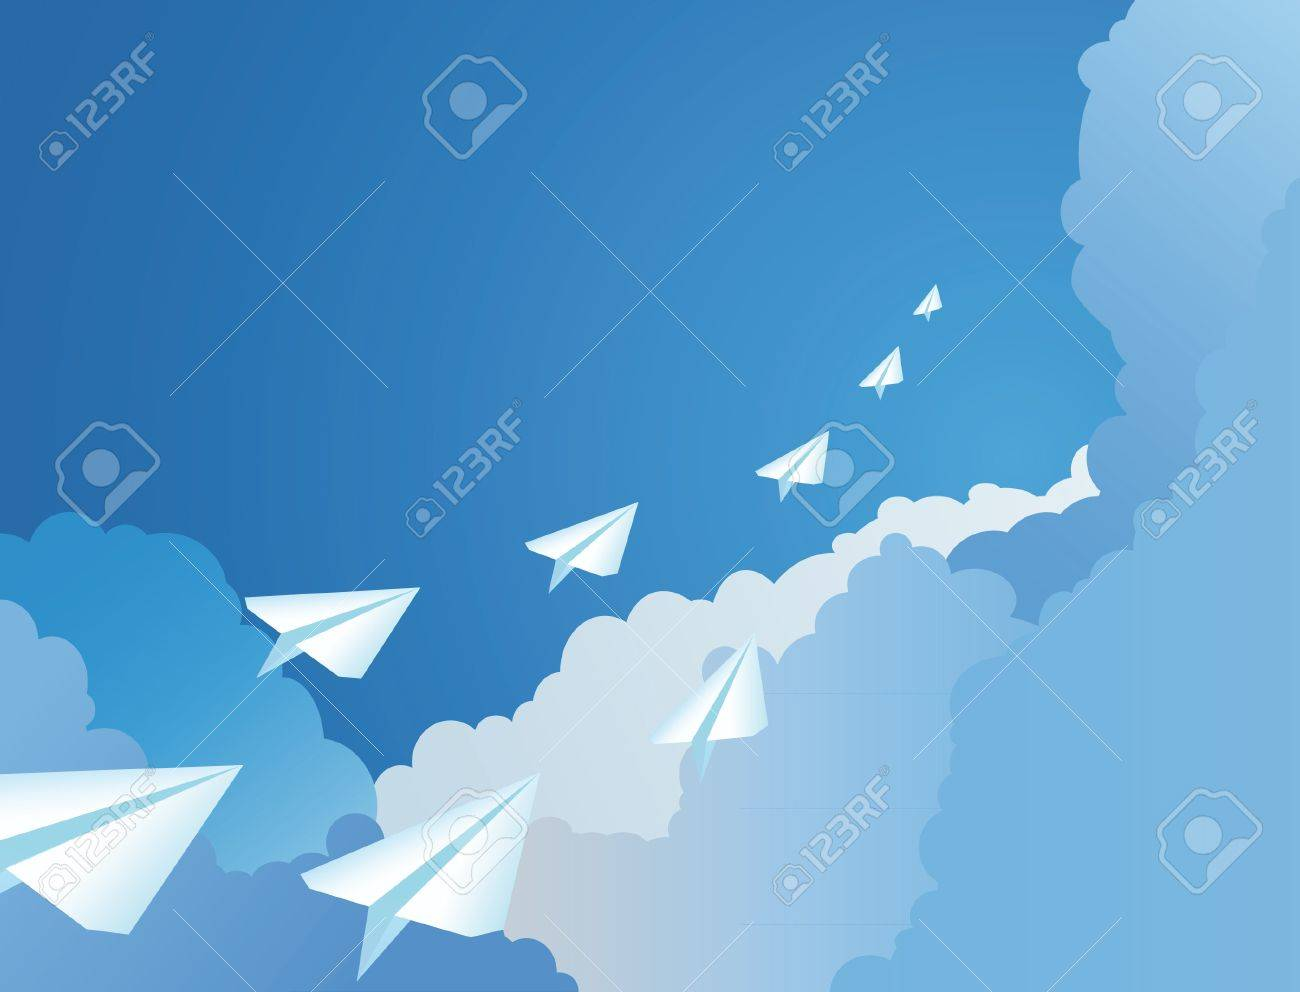 The paper airplanes flying in a sky Stock Vector - 10436336